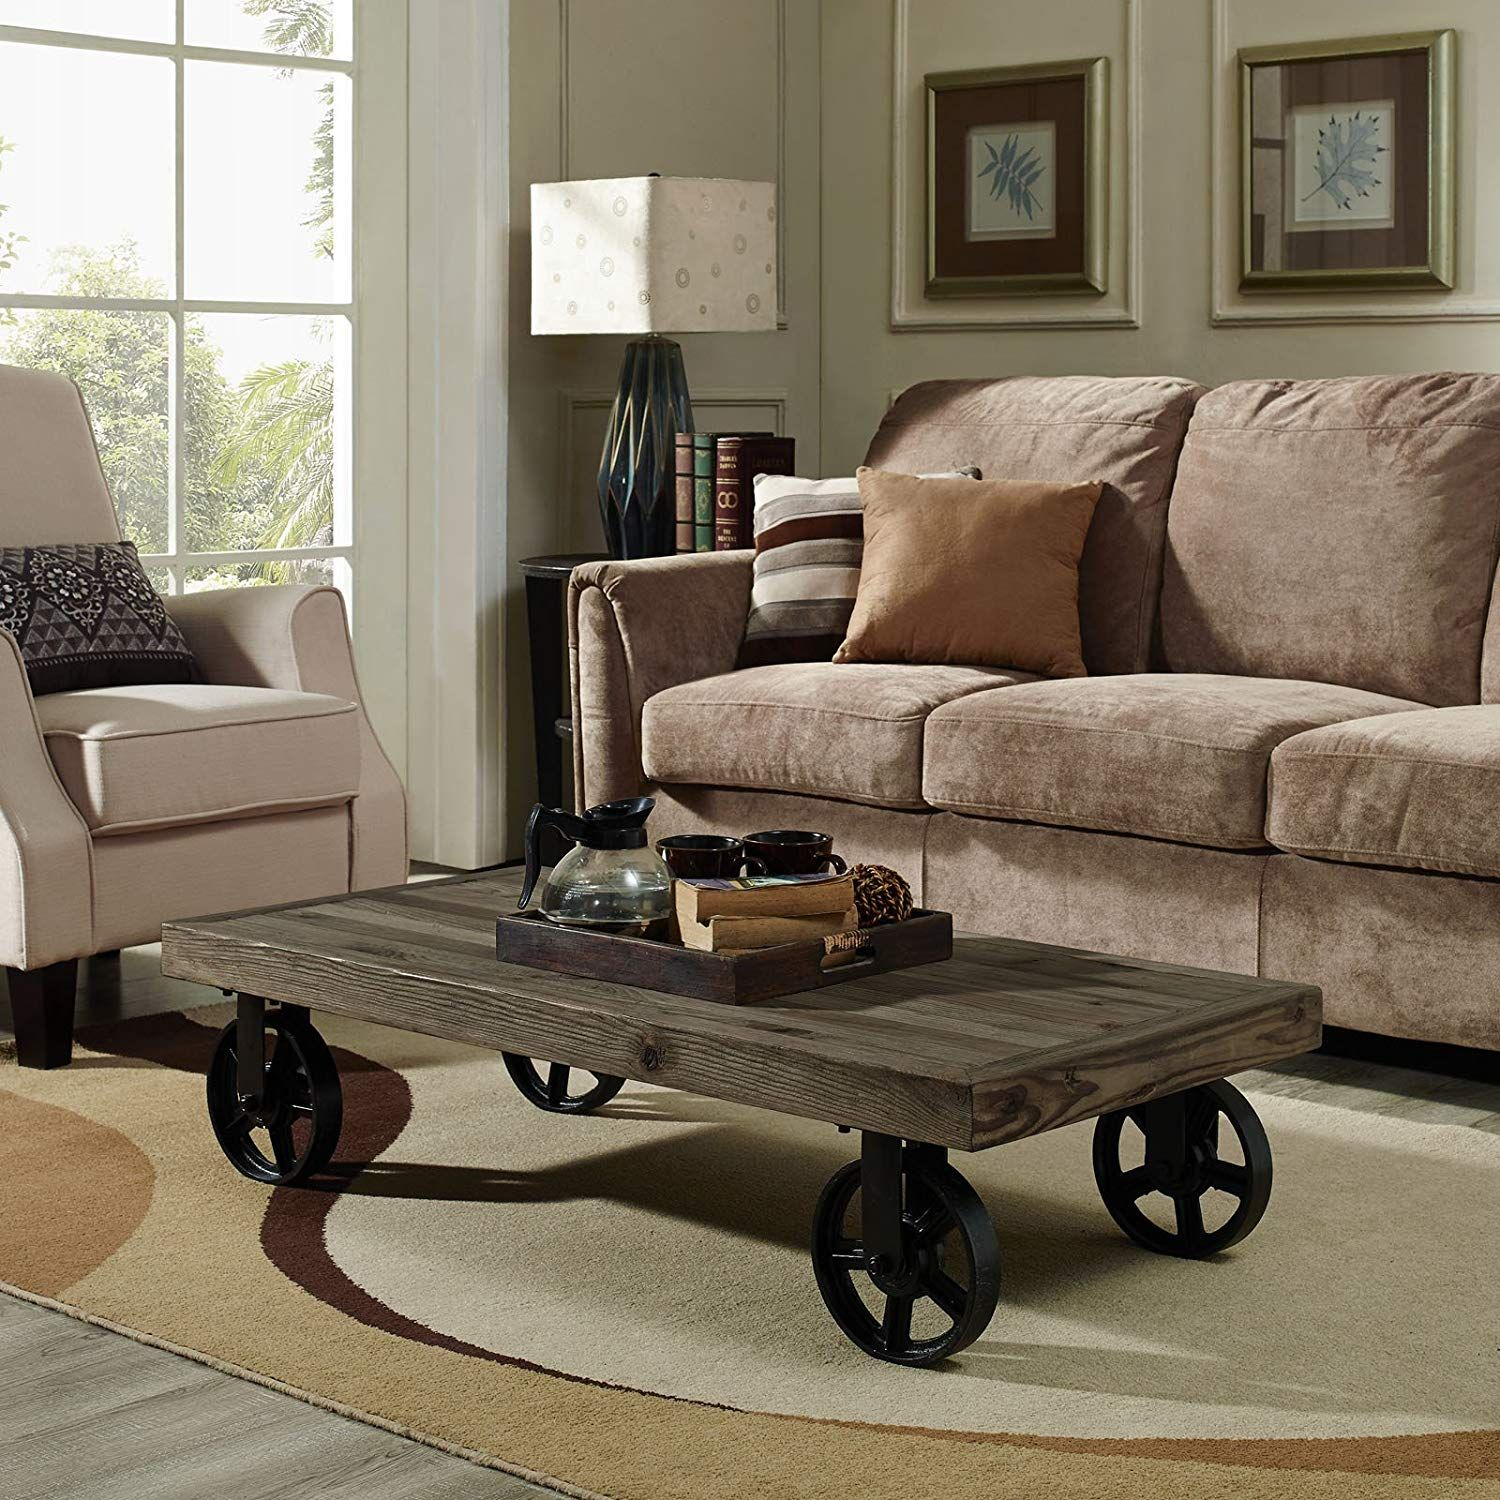 Details about Coffee Table with Wheels Retro Industrial Metal Wood Top  Living Room Furniture